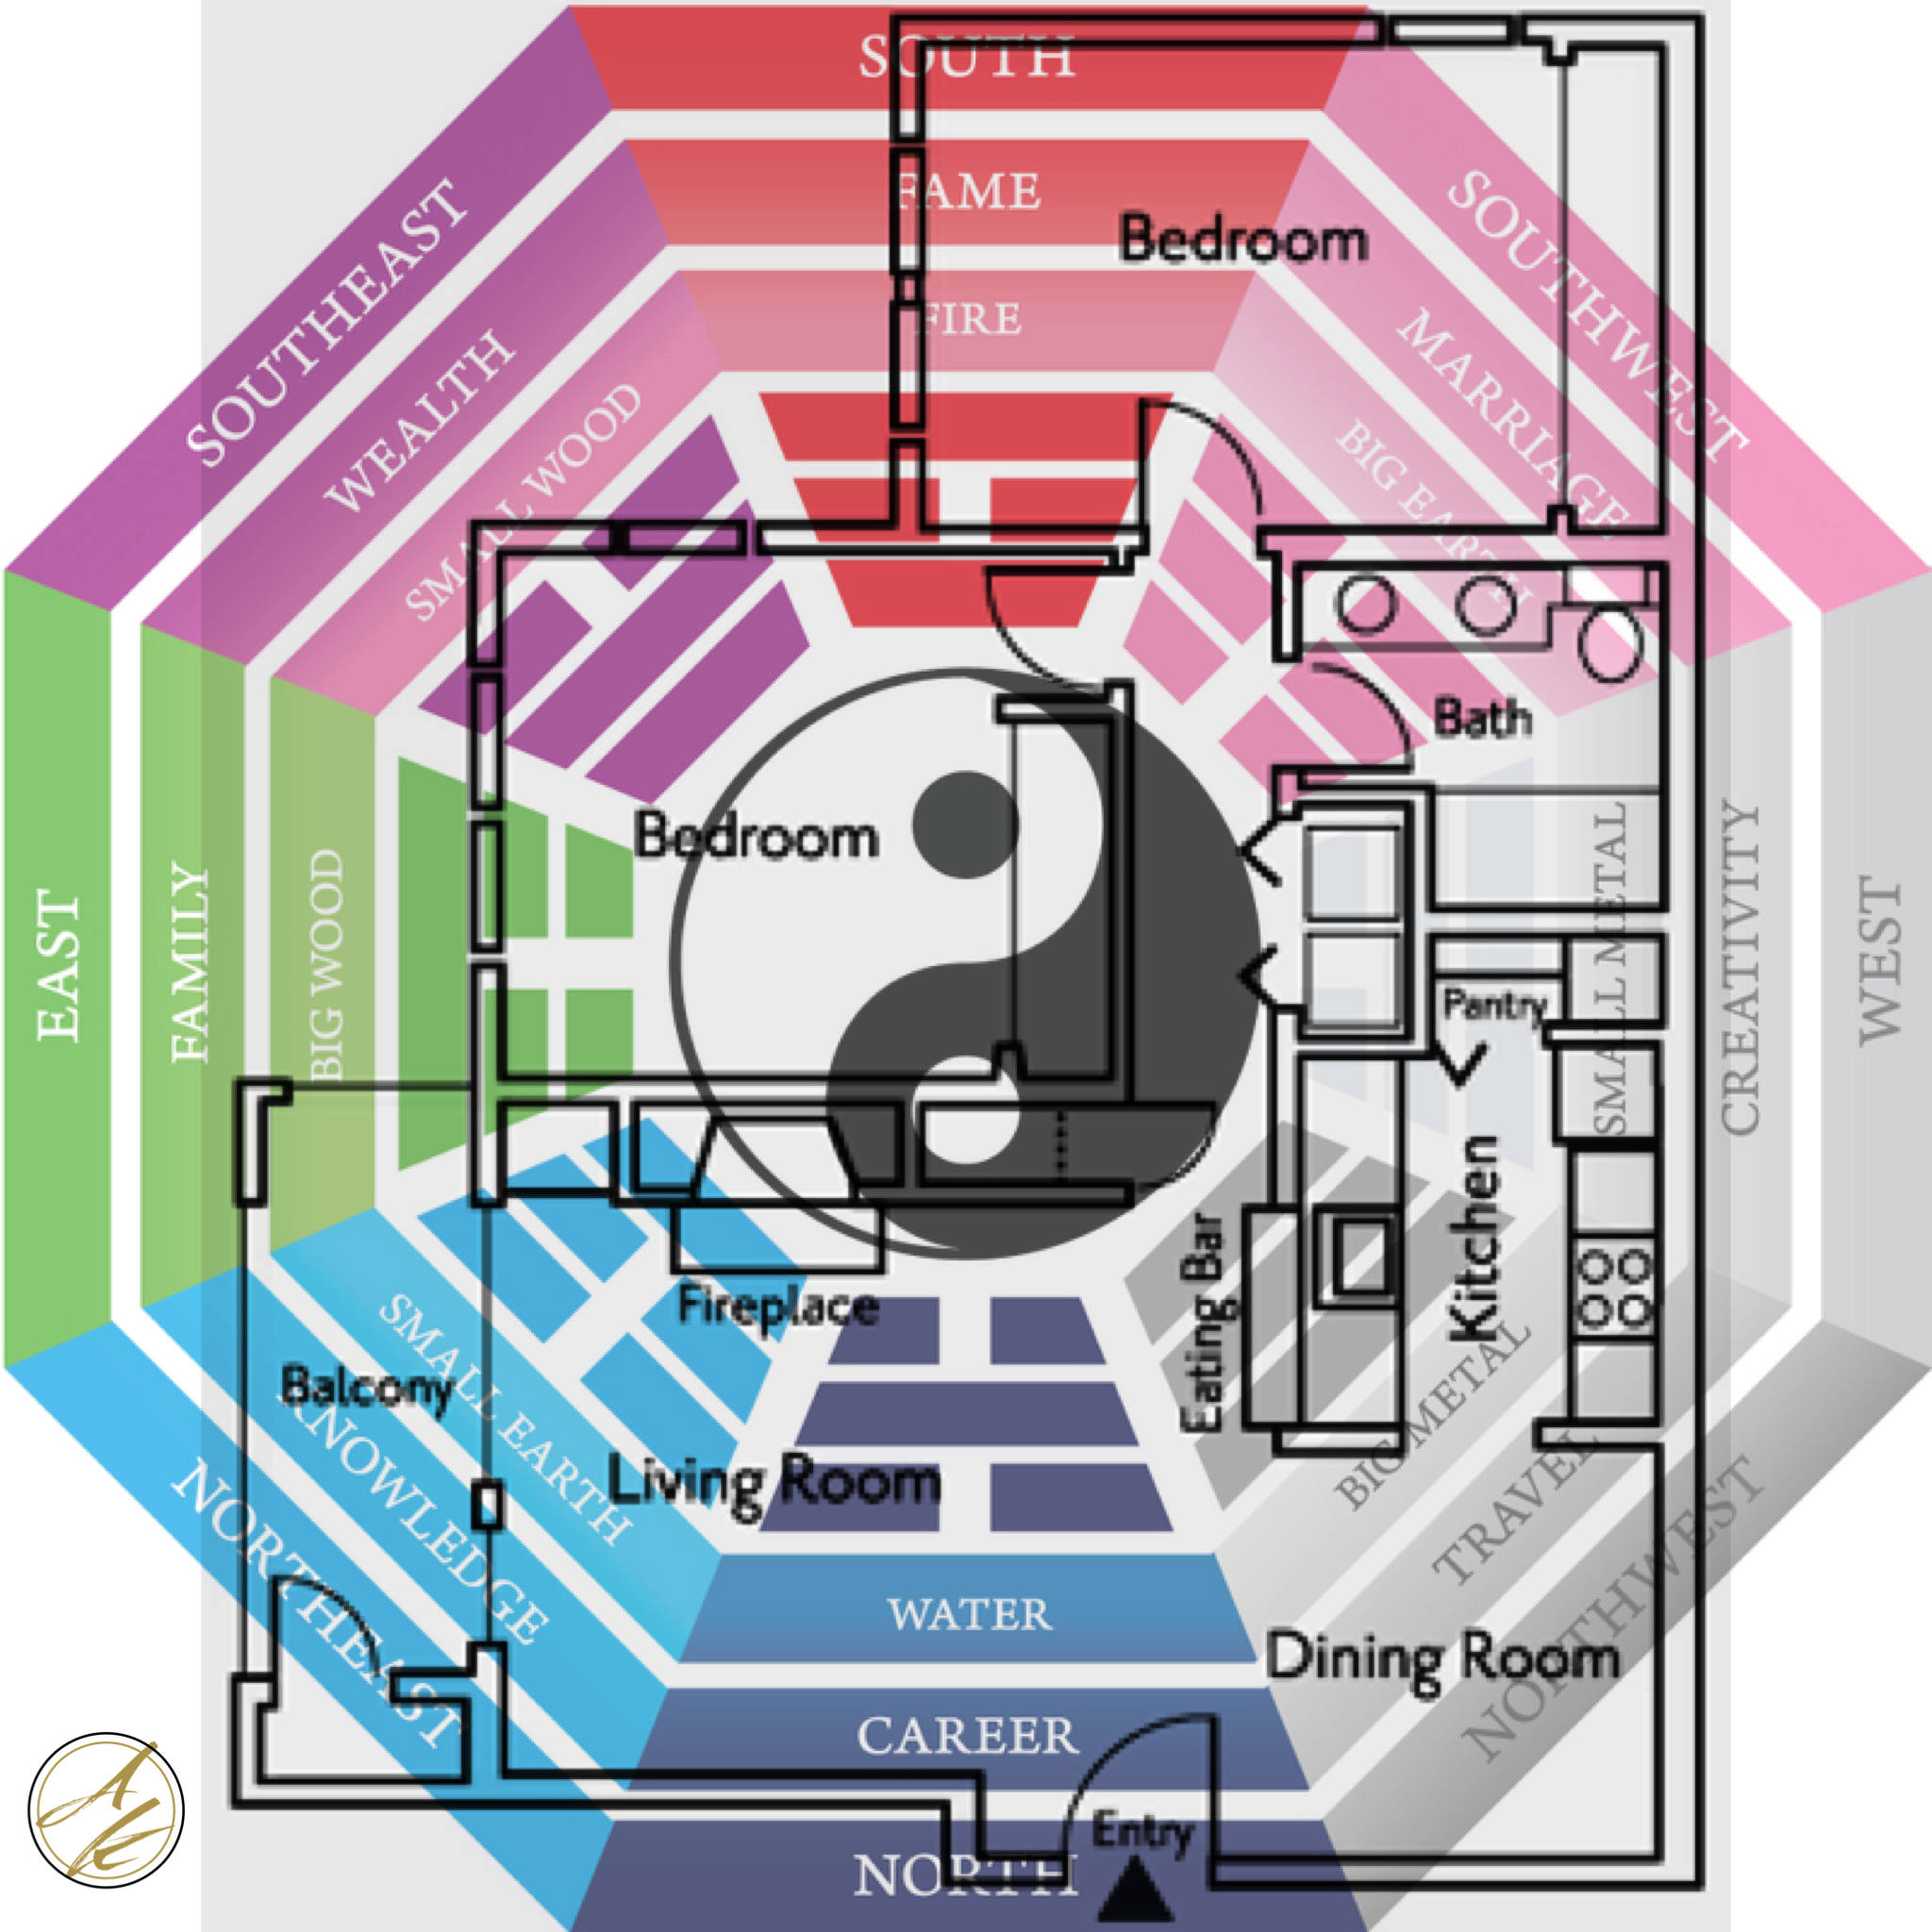 Albie Knows Floor Plan & Bagua Map Overlay